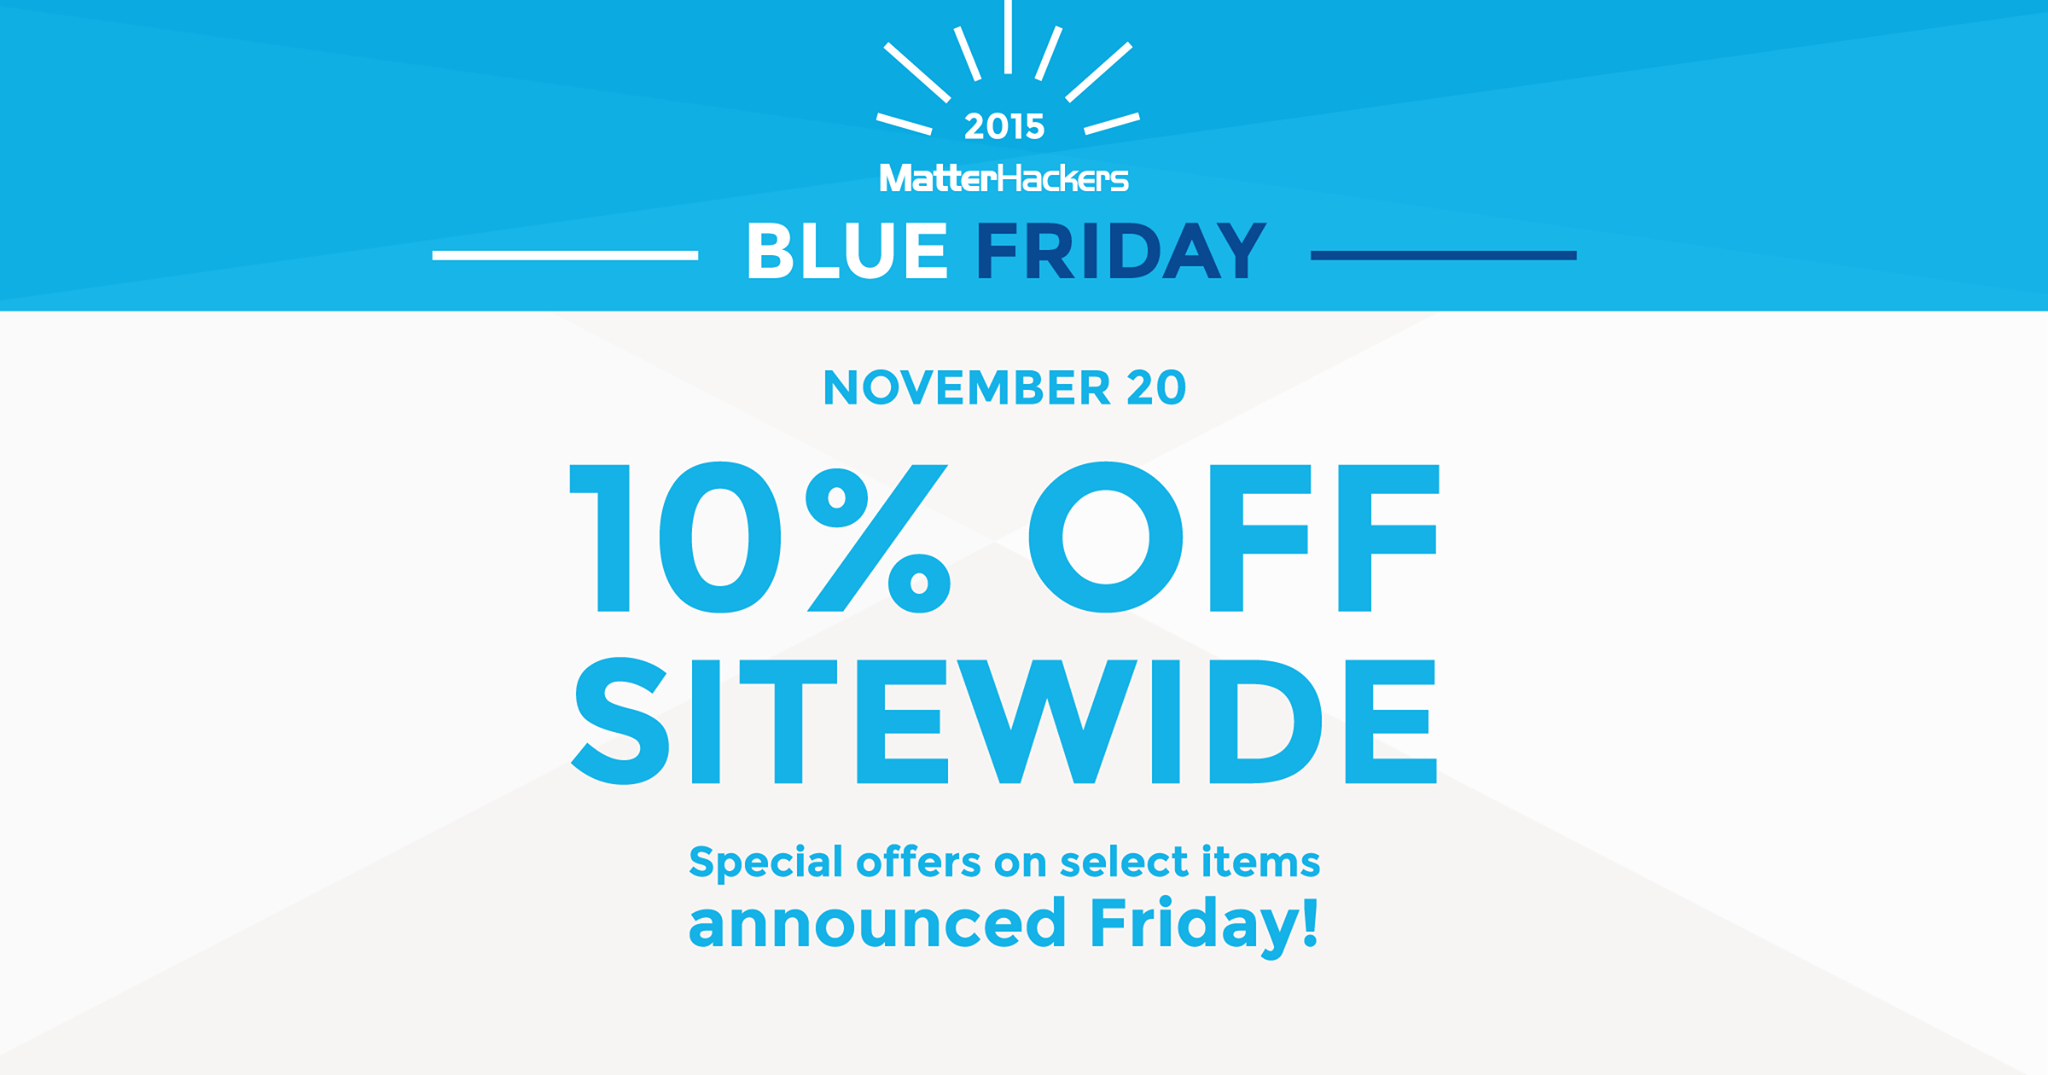 Blue Friday Is Coming: 10% Off 3D Printers and Supplies on MatterHackers.com